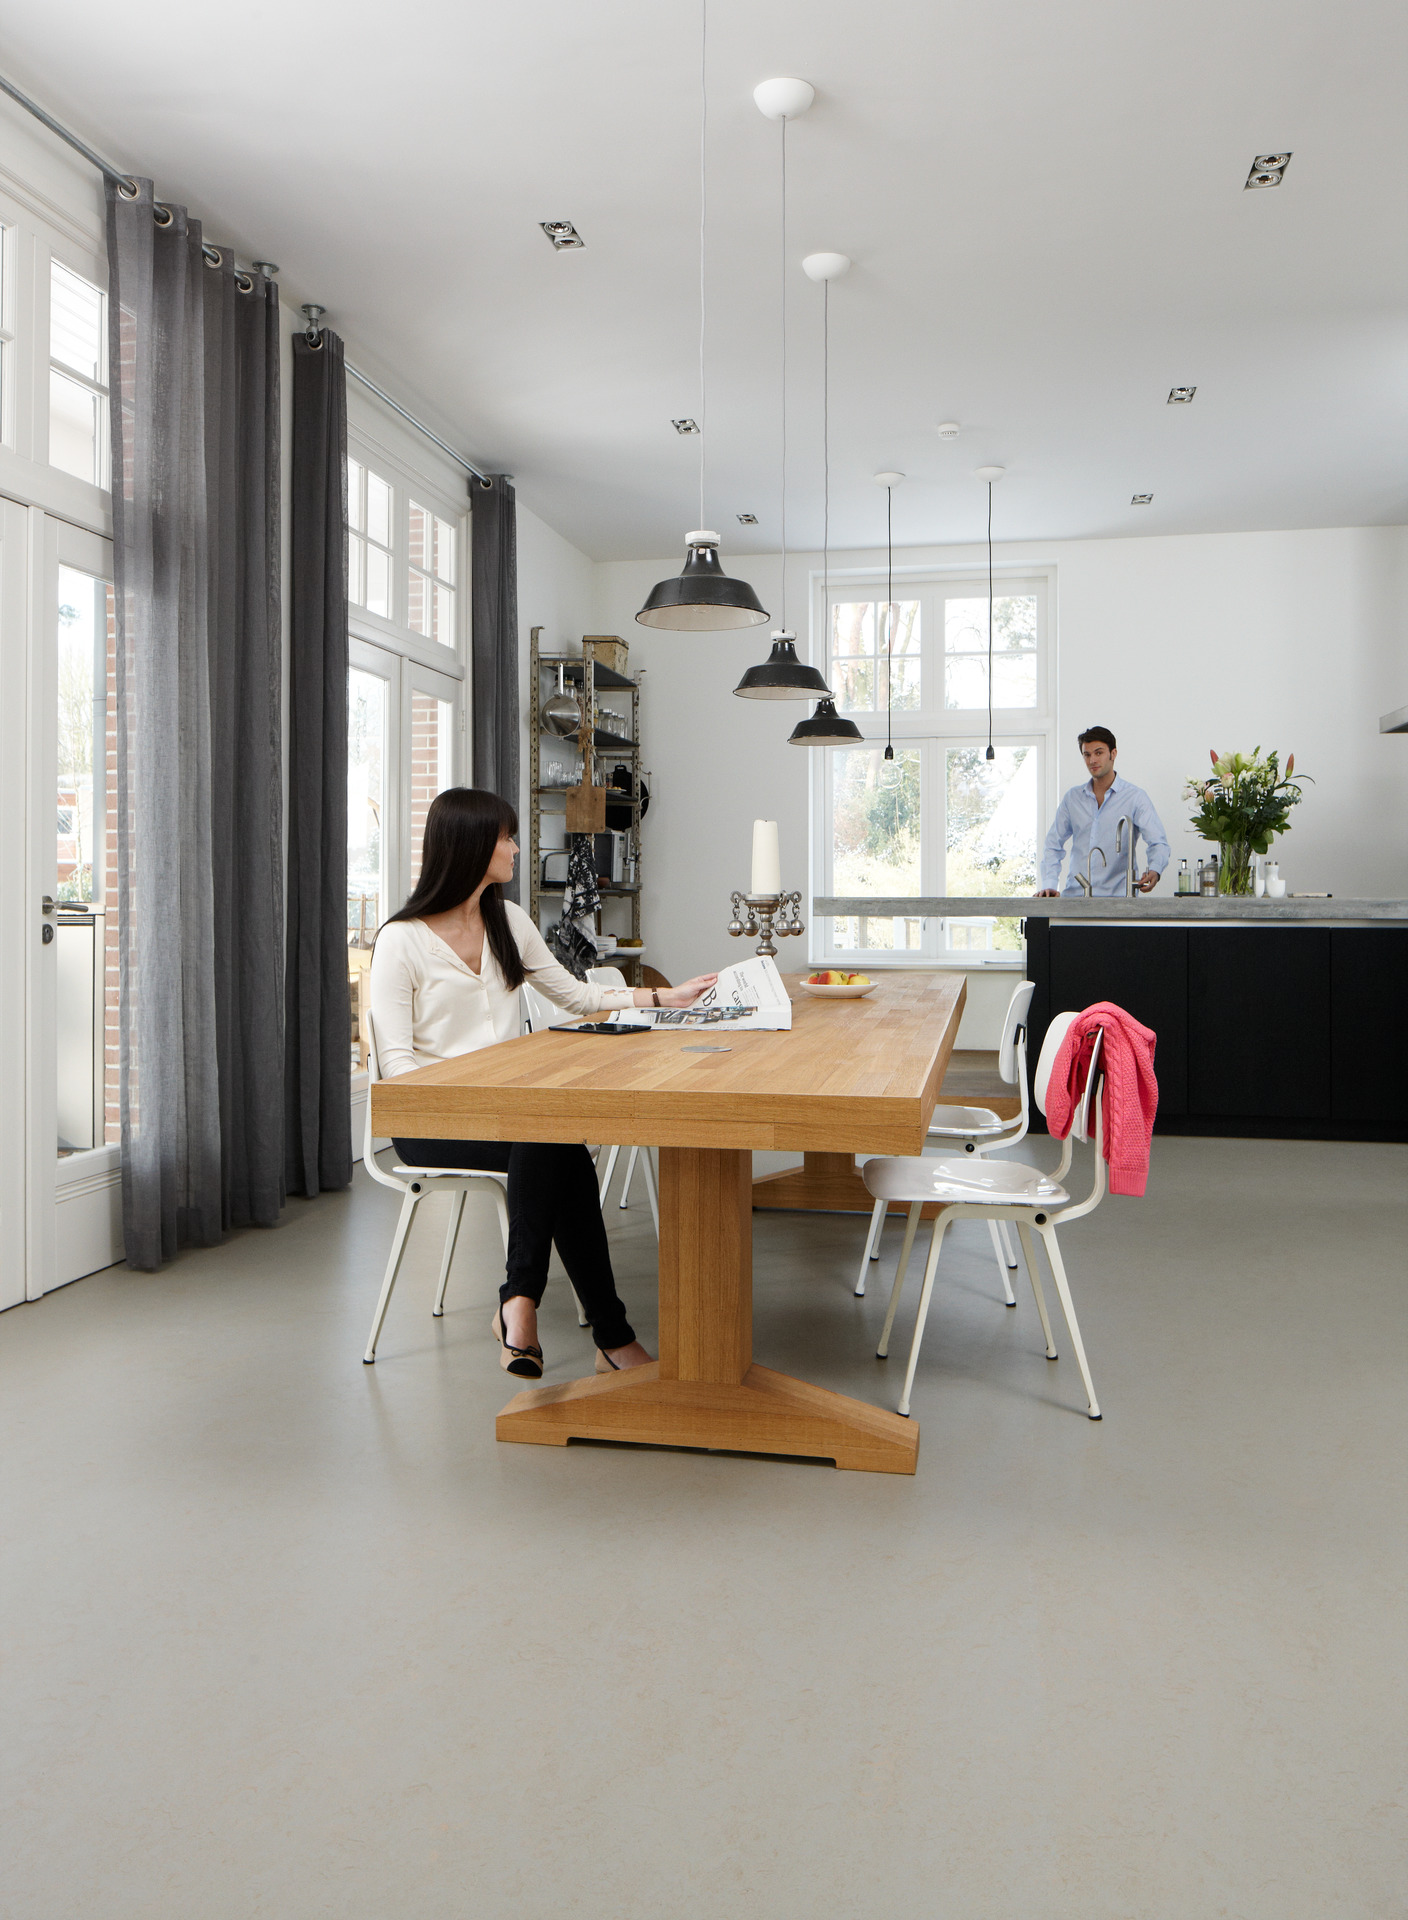 Medium-Marmoleum_At_Home_2013_Diningroom_People.jpg